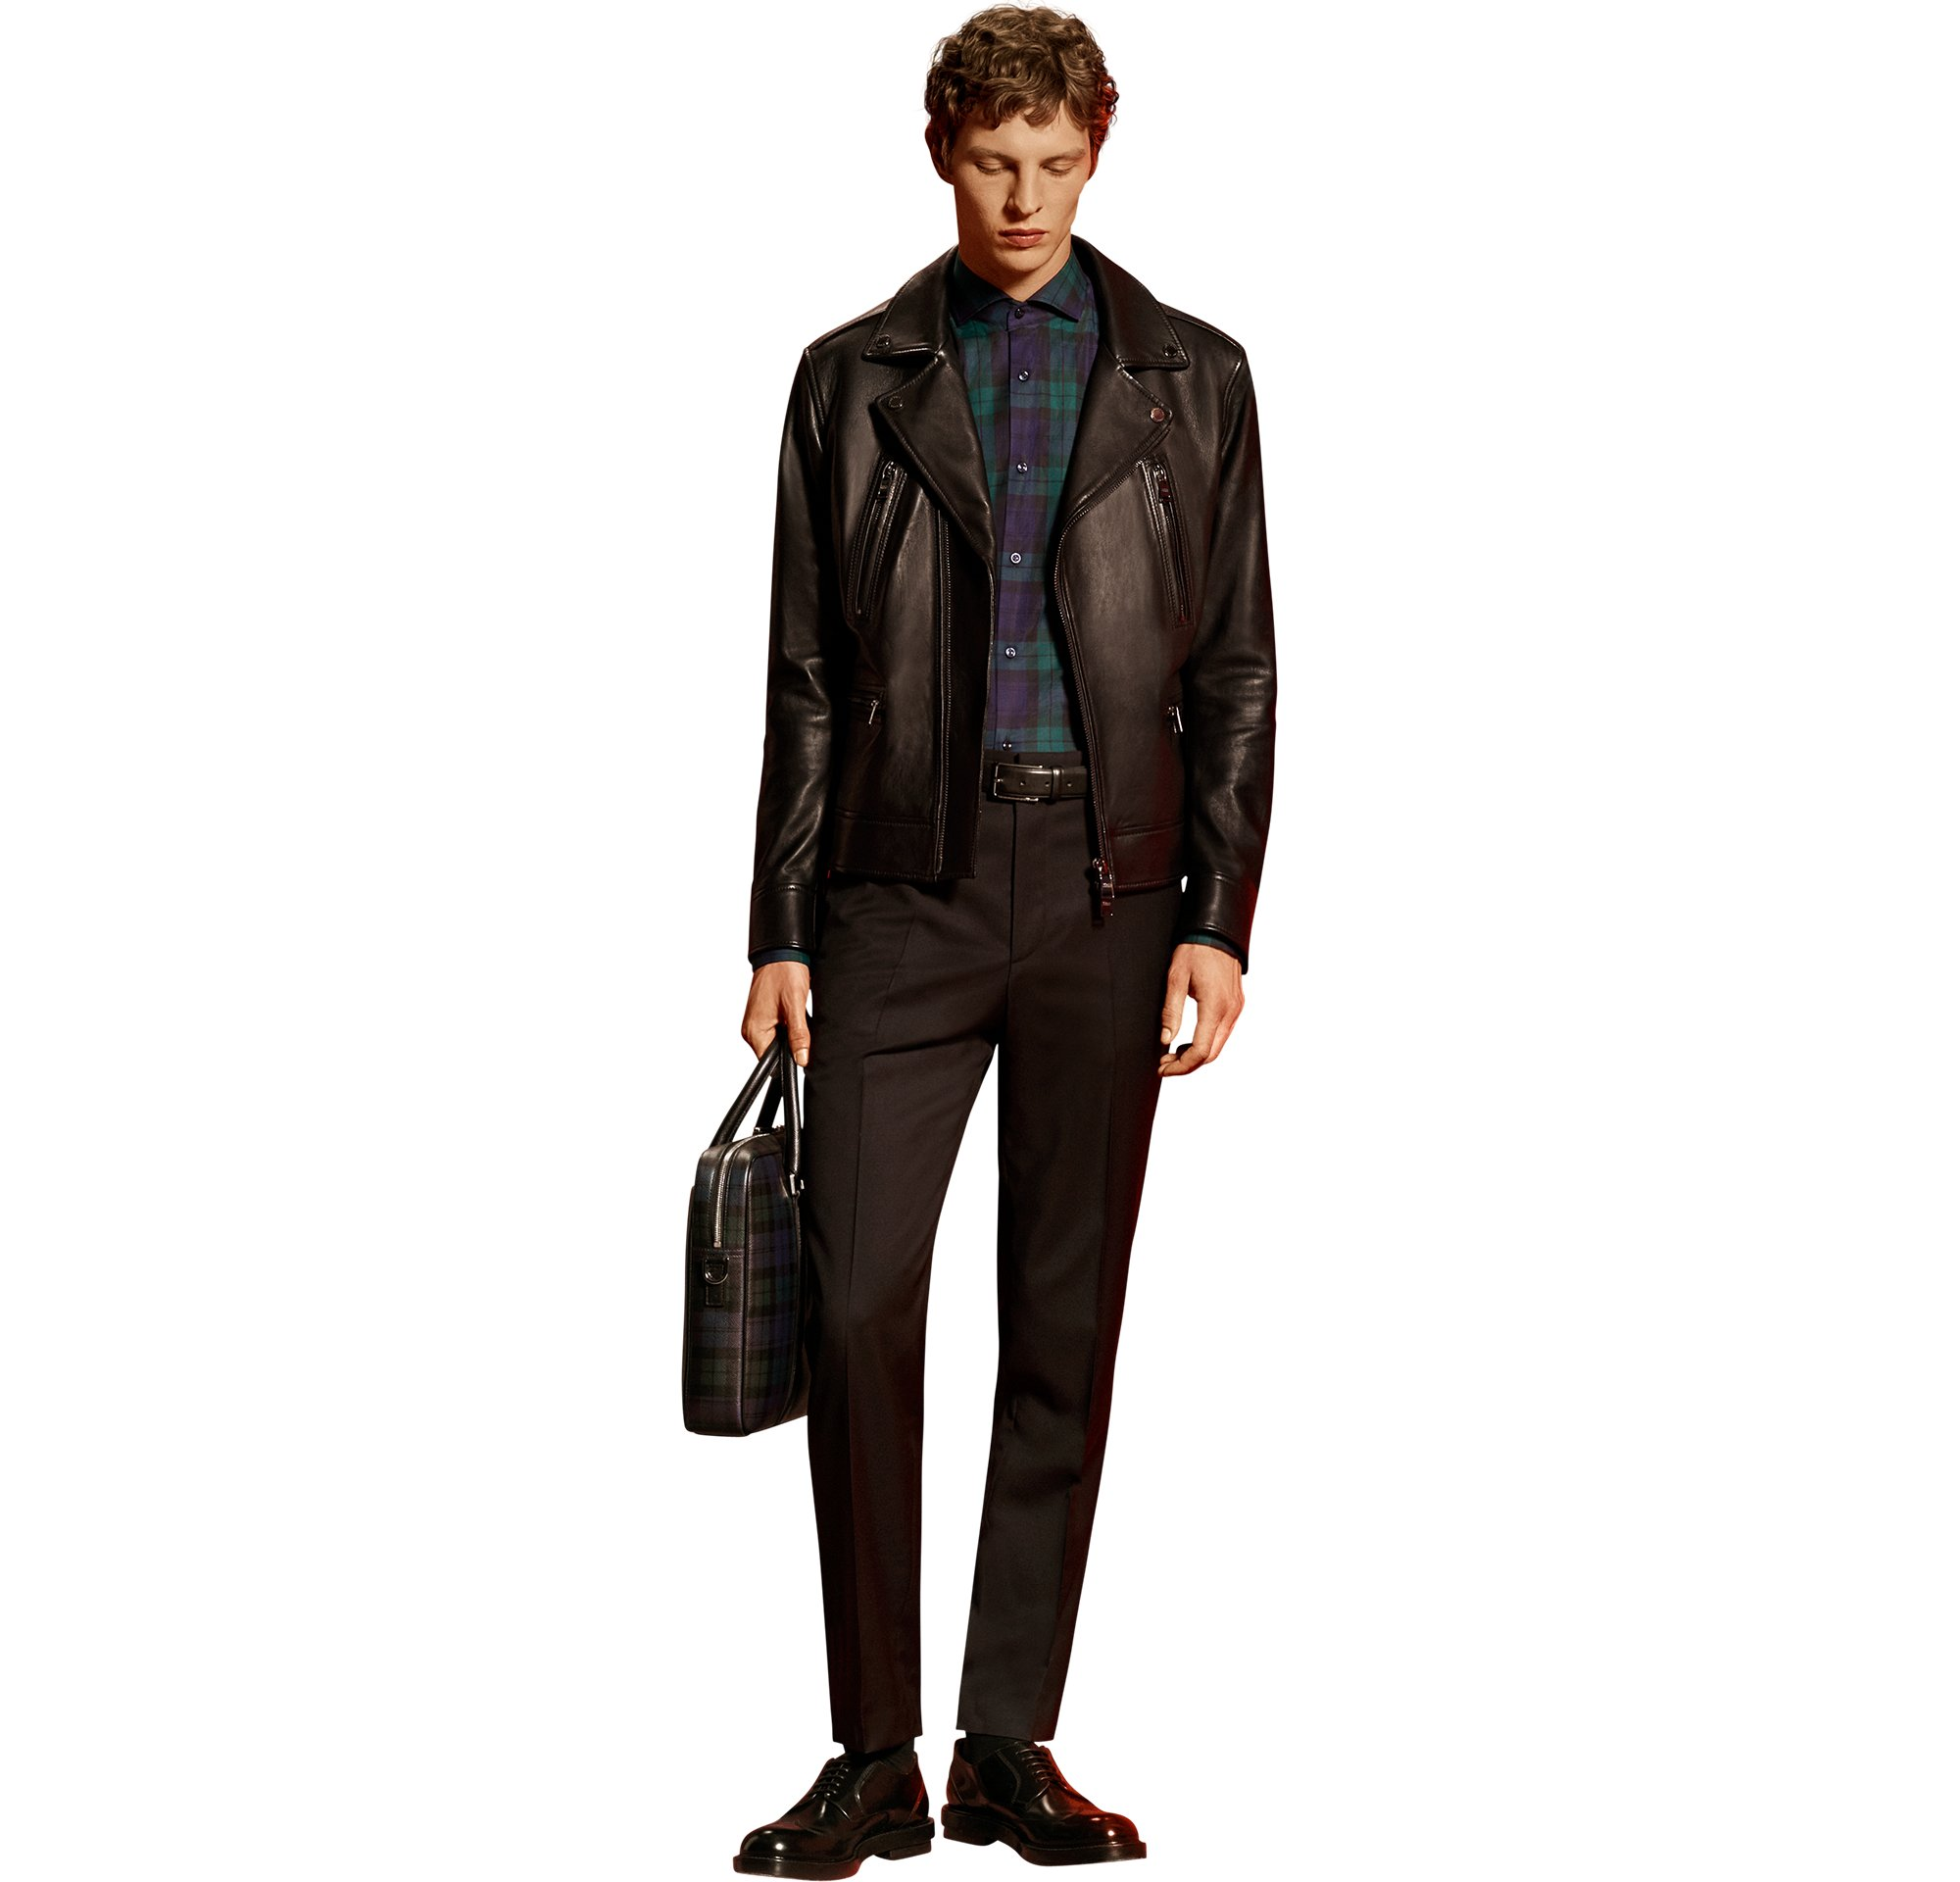 CTG_BOSS_Men_PS18_Look_5,